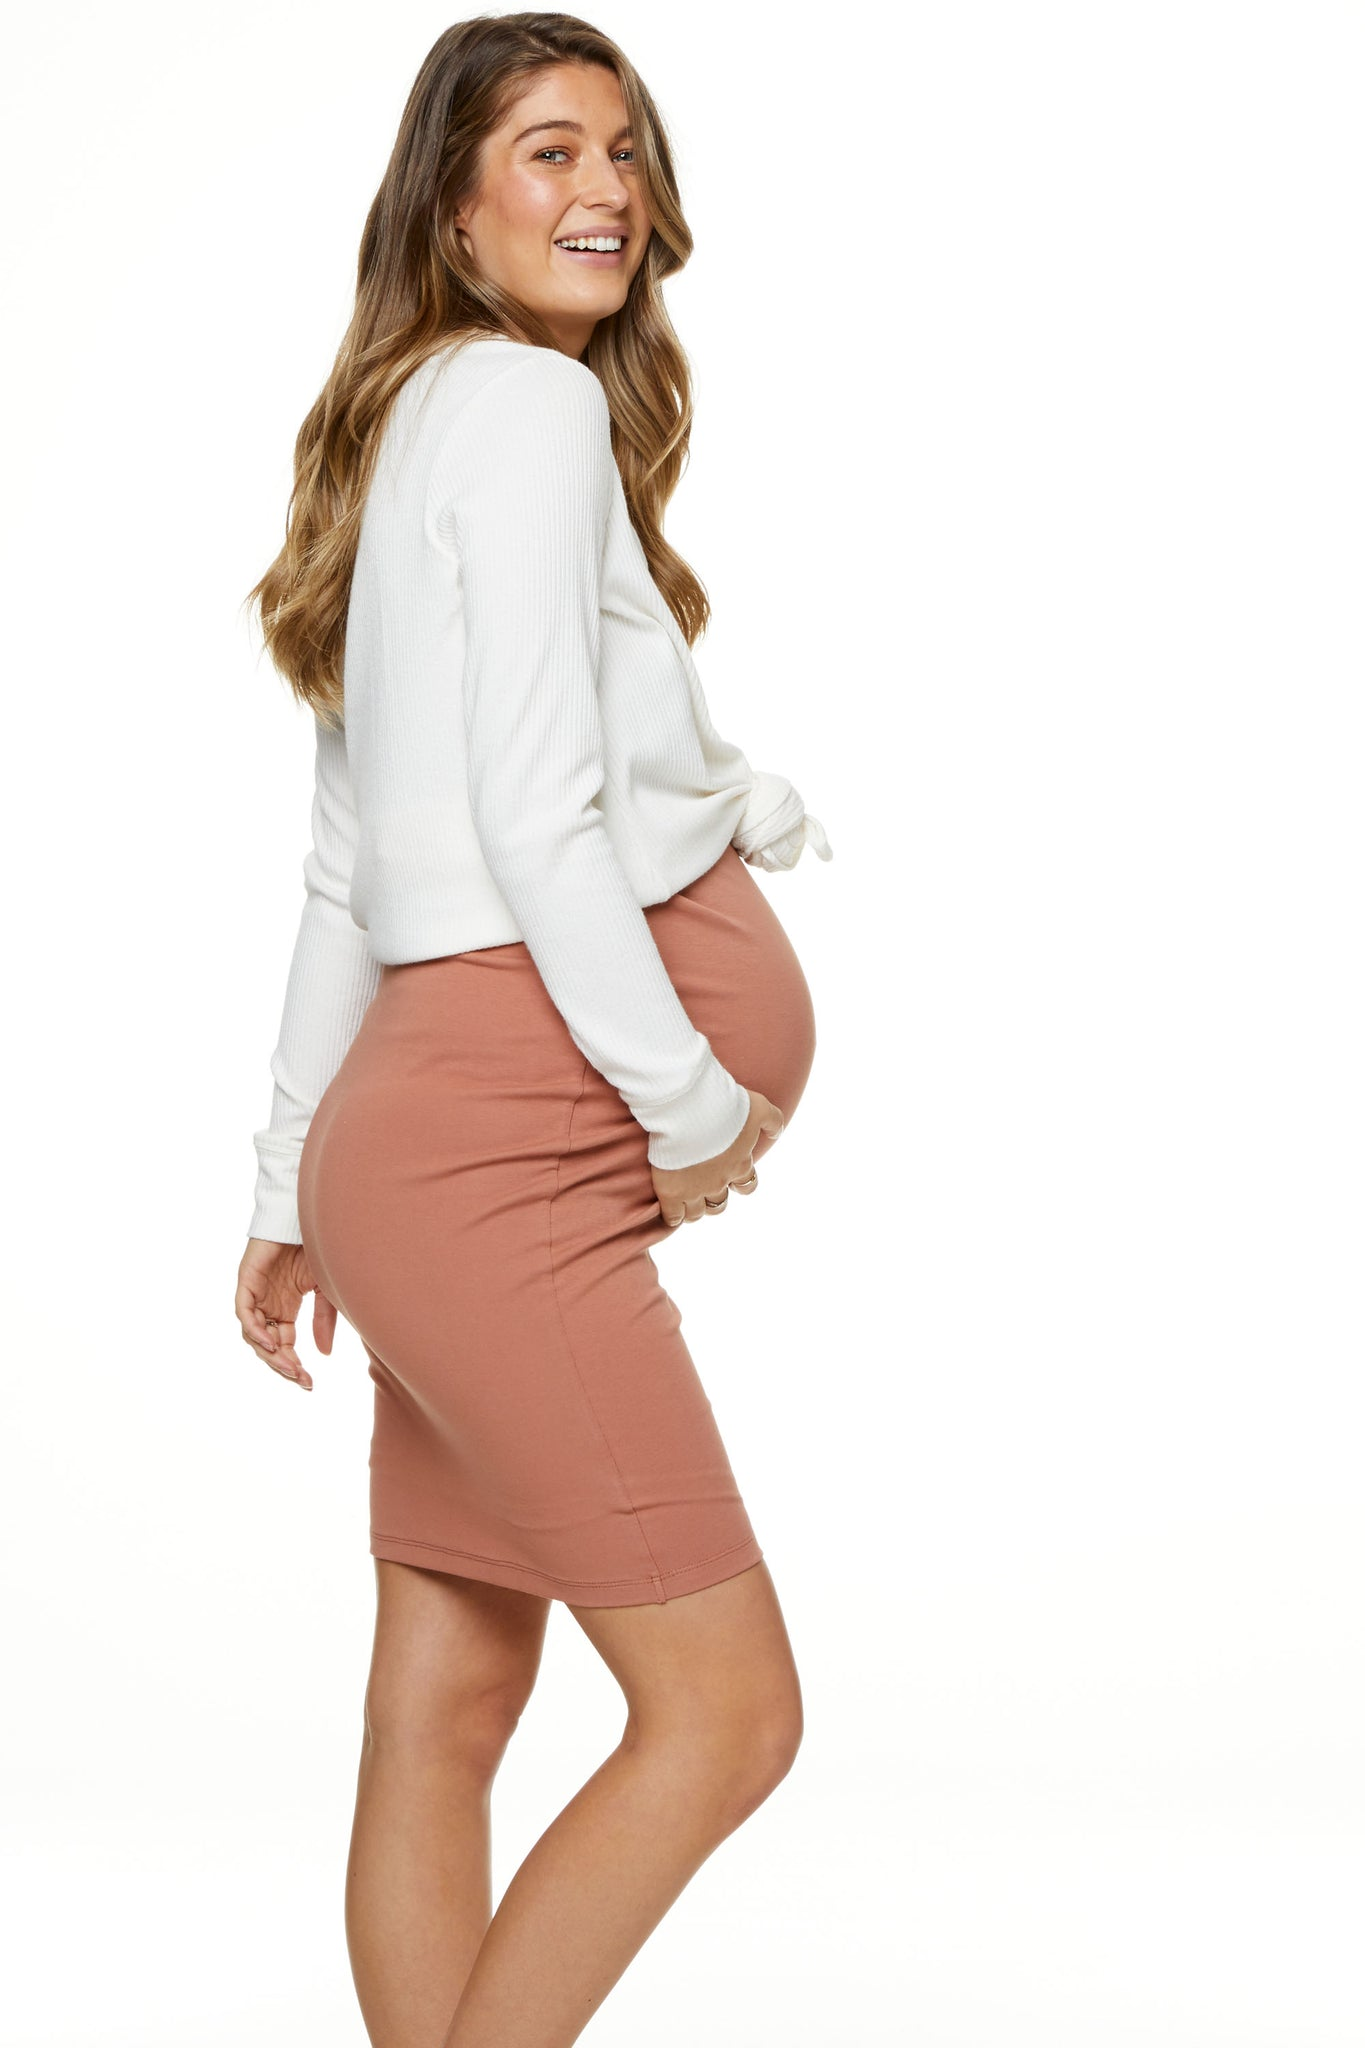 Bodycon Maternity Skirt Image 3